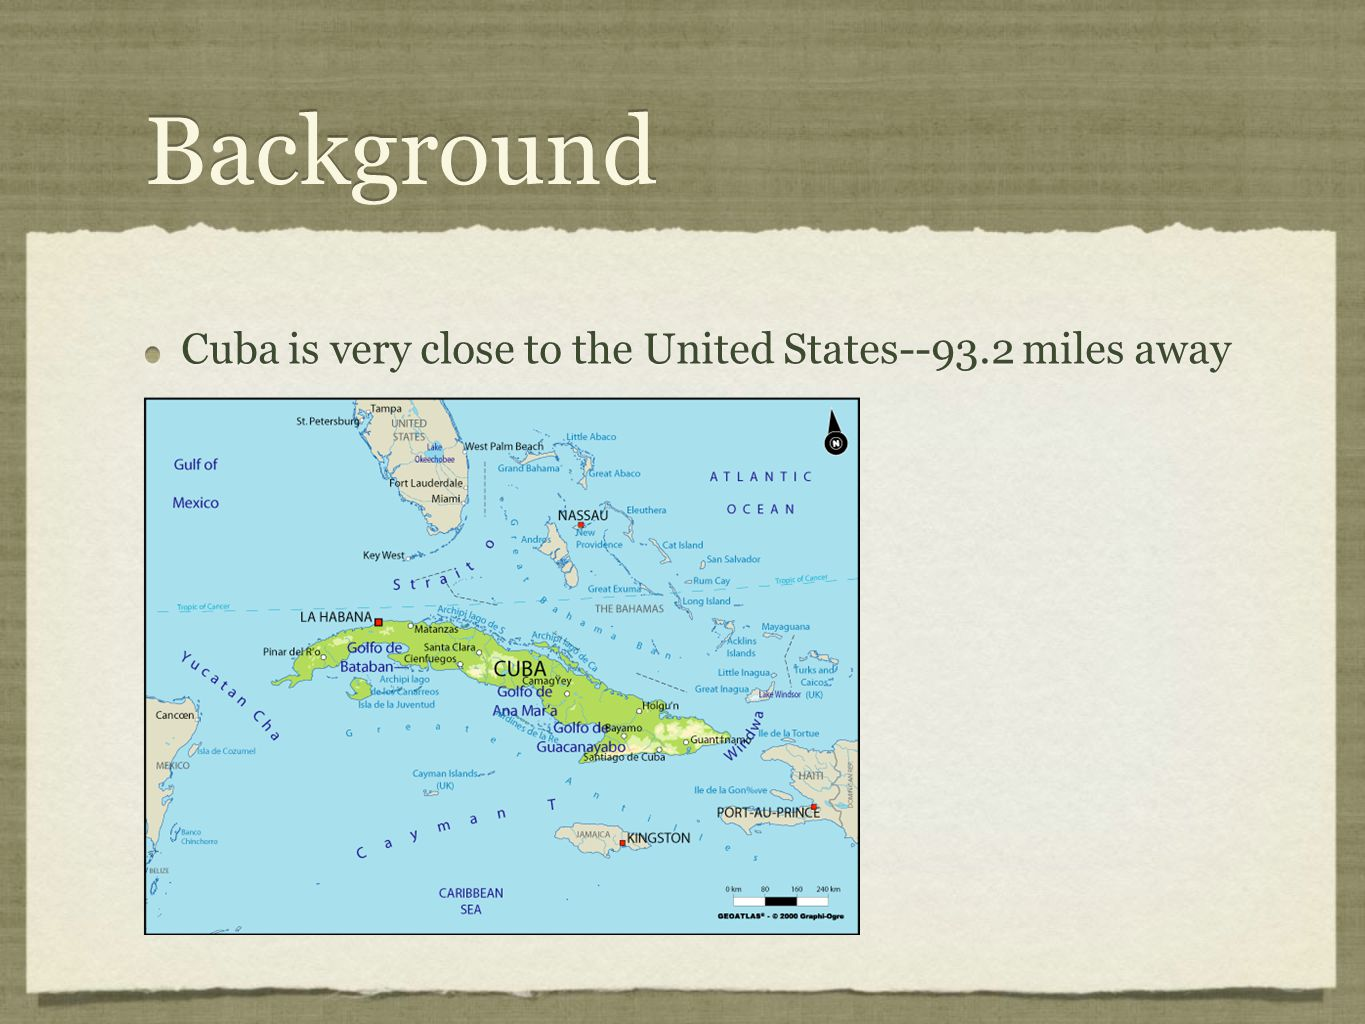 Background Cuba is very close to the United States--93.2 miles away